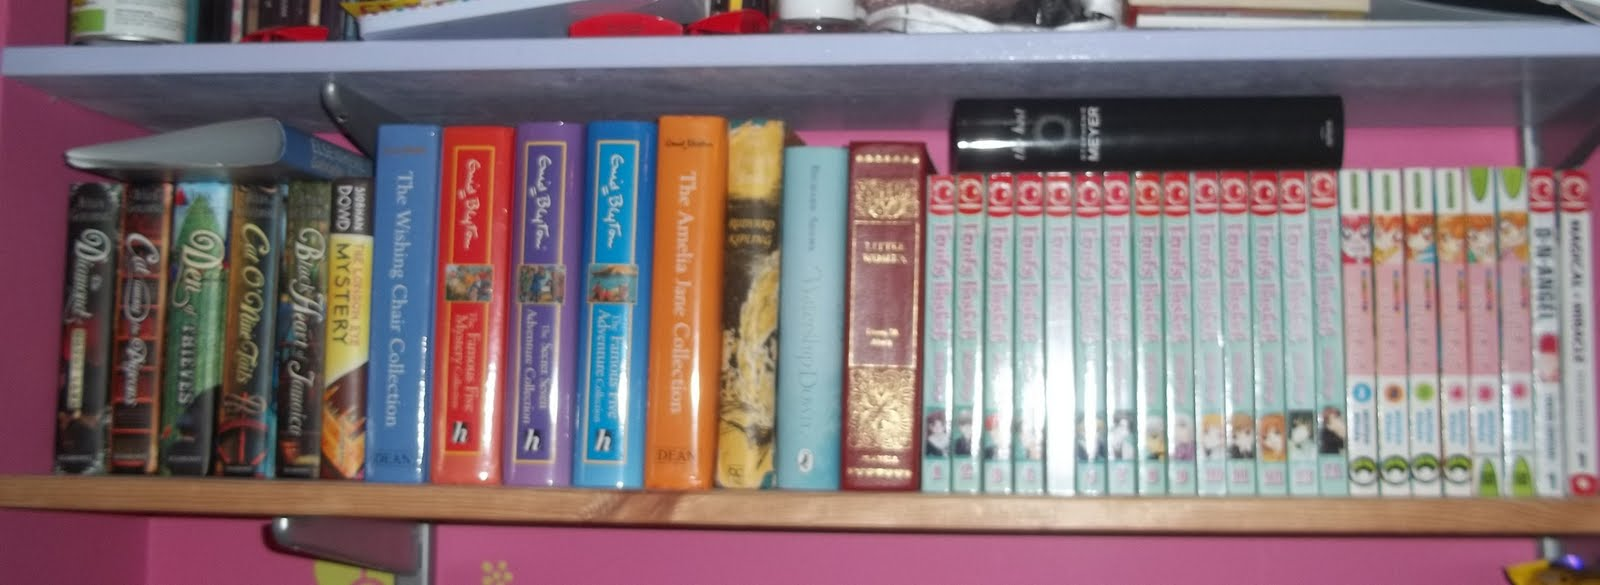 On This Little Shelf Above All My Other Shelves Is Where I Keep Small Manga Collection Mostly Fruits Basket And Momote Lollipop Enid Blyton